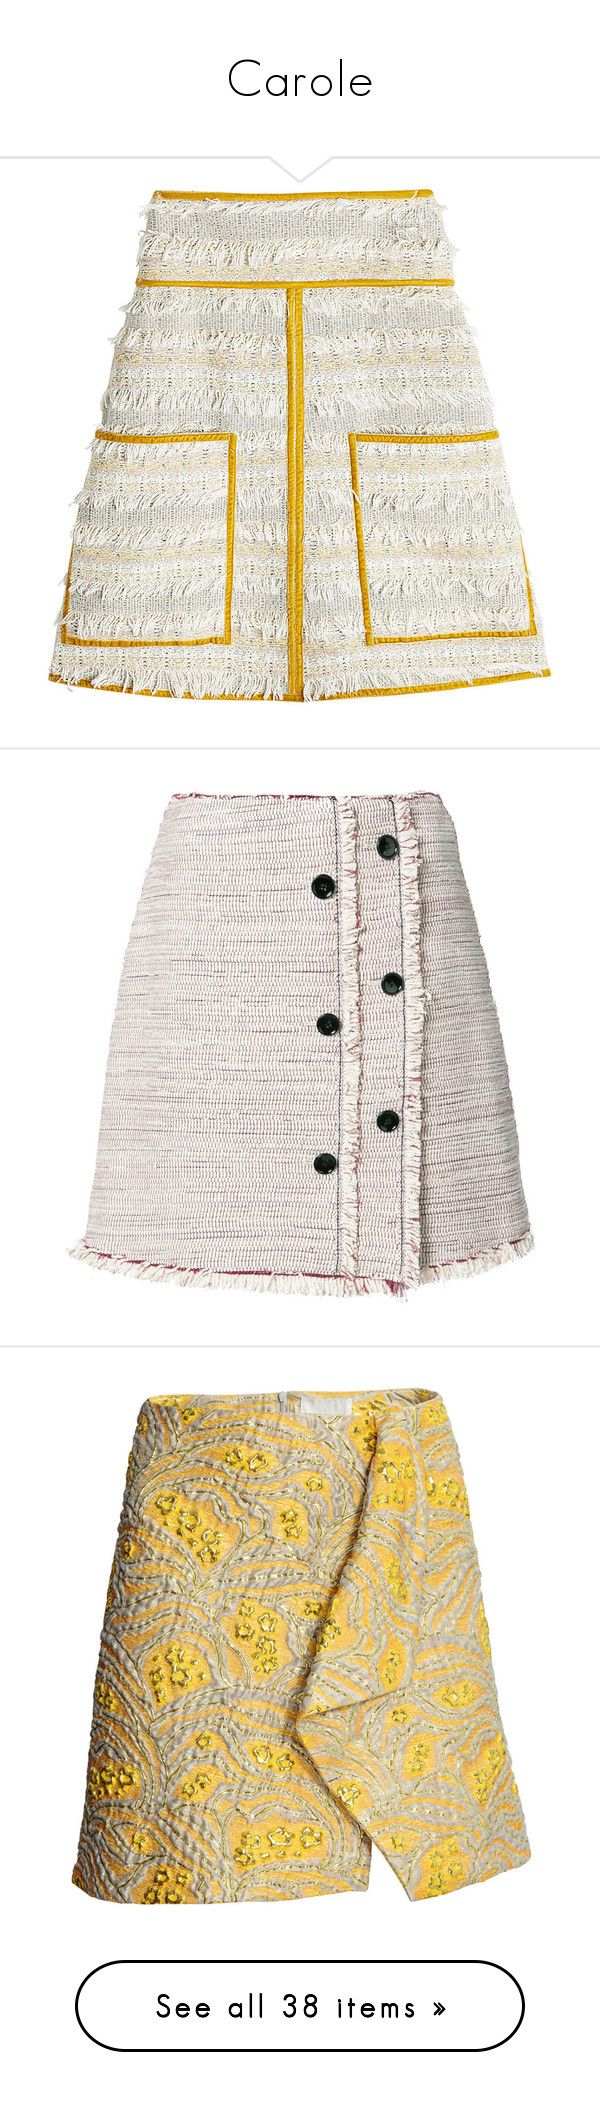 """""""Carole"""" by belenloperfido ❤ liked on Polyvore featuring skirts, mini skirts, multicolored, high waisted mini skirt, white short skirt, white boho skirt, white mini skirt, short mini skirts, bottoms and gonne"""